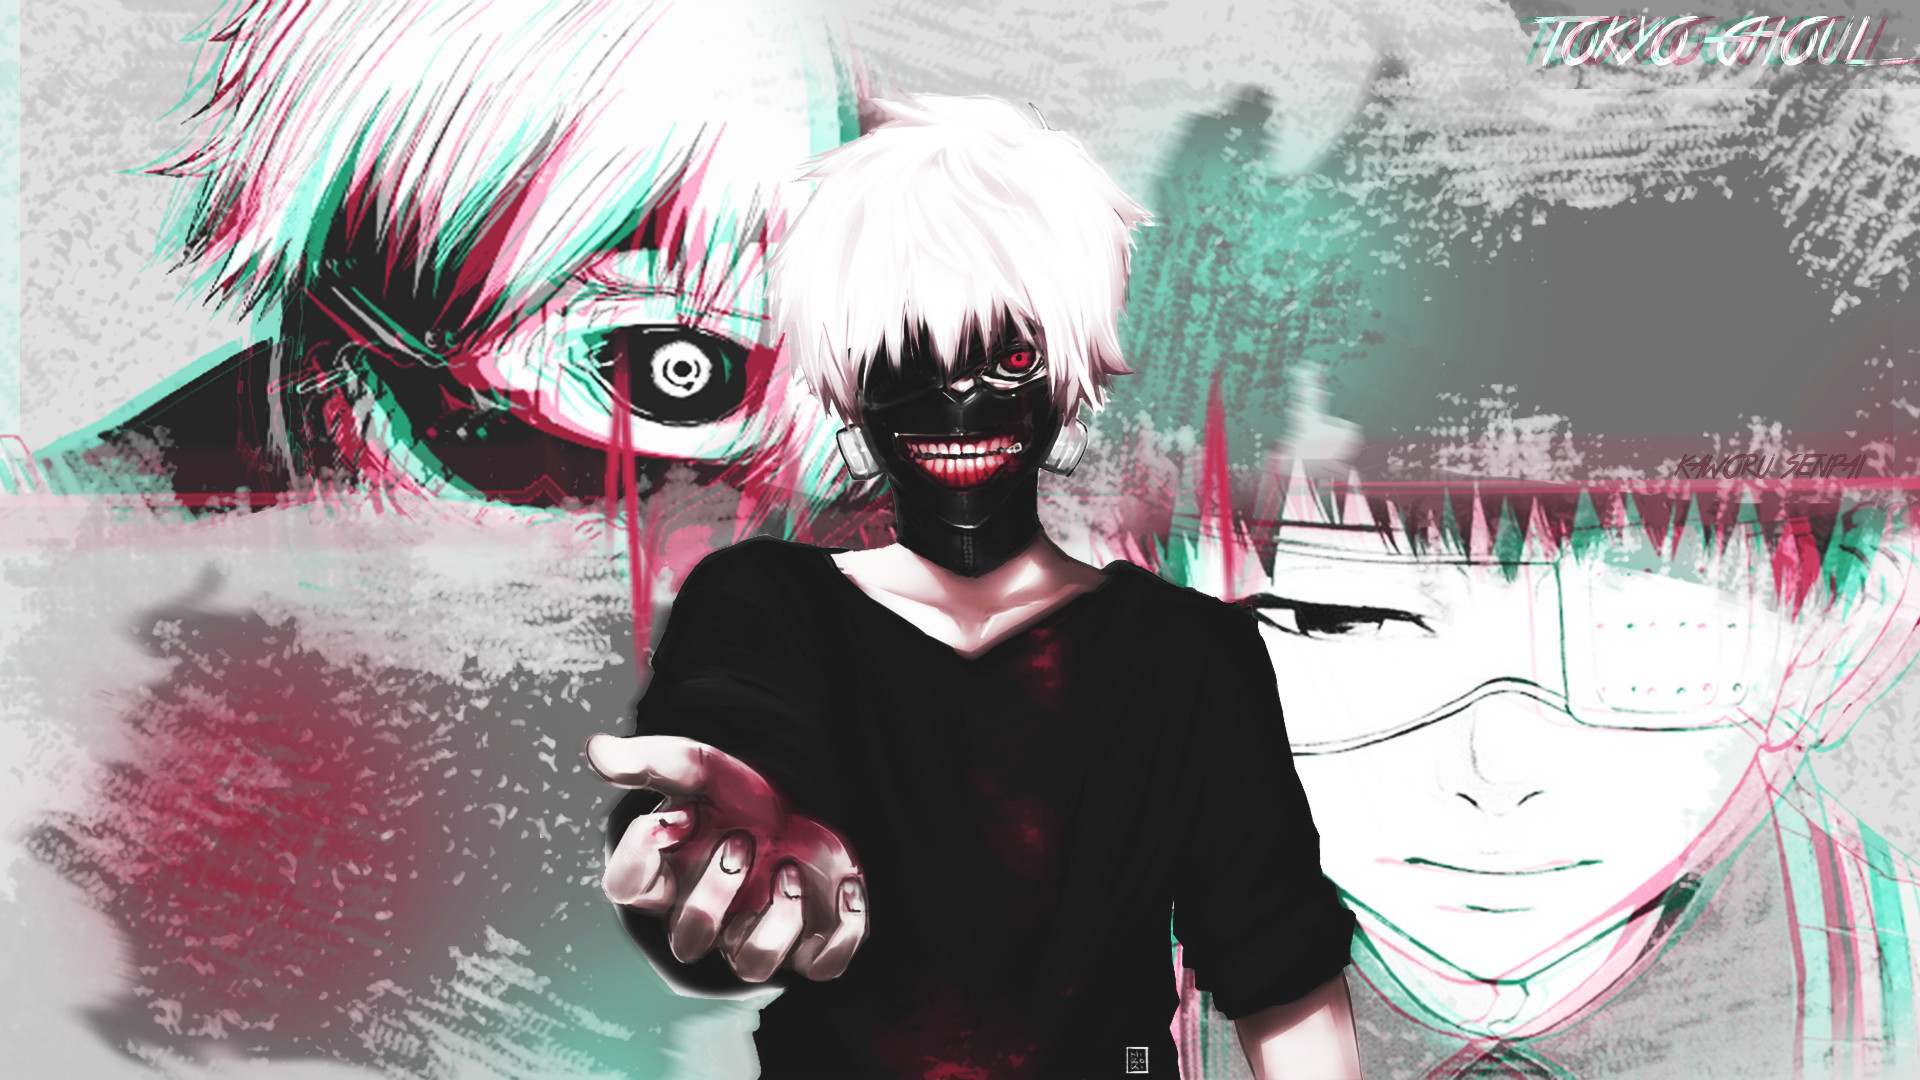 Tokyo ghoul wallpapers hd 83 background pictures - Tokyo ghoul wallpaper computer ...